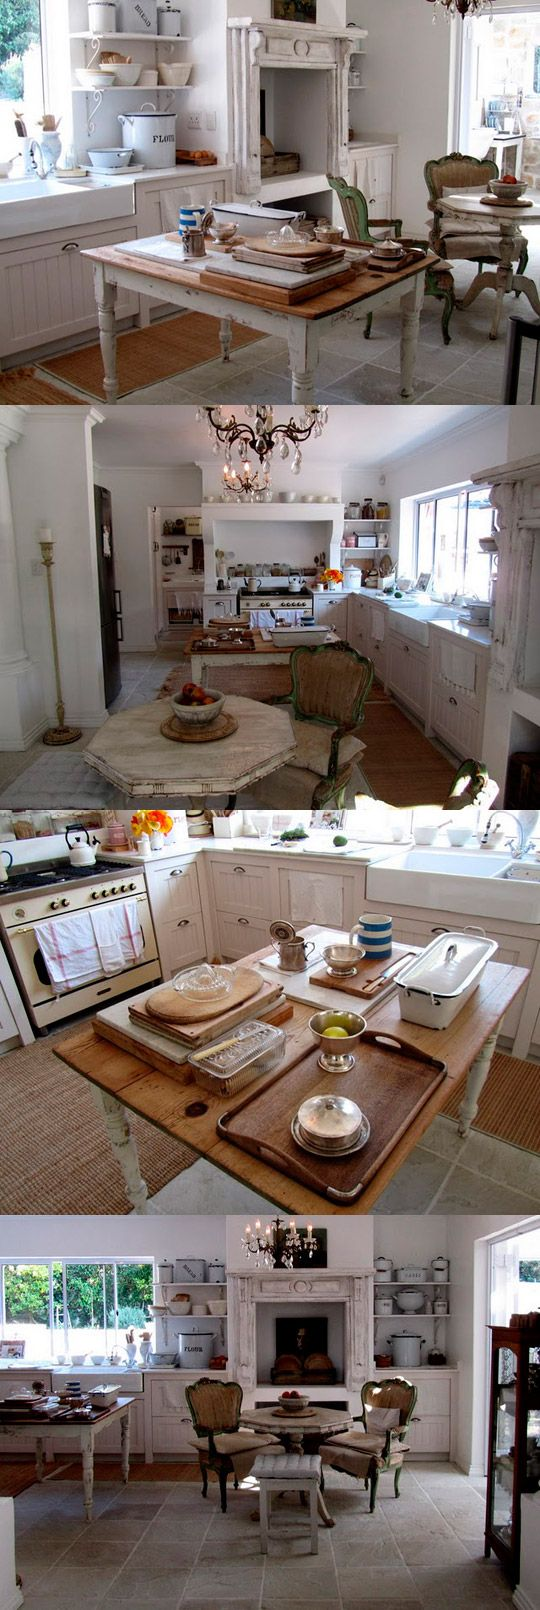 Old fashioned white farmhouse style kitchen with the most amazing chandelier.  Gorgeous.